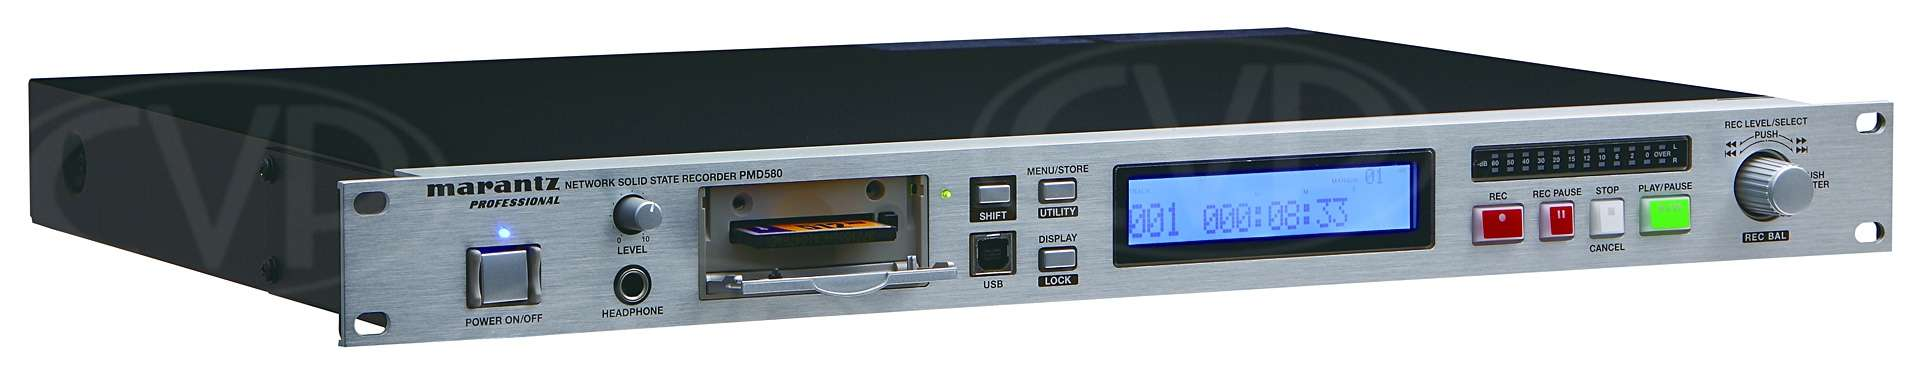 kipro file kiprorack recorder aja digital m mount rack